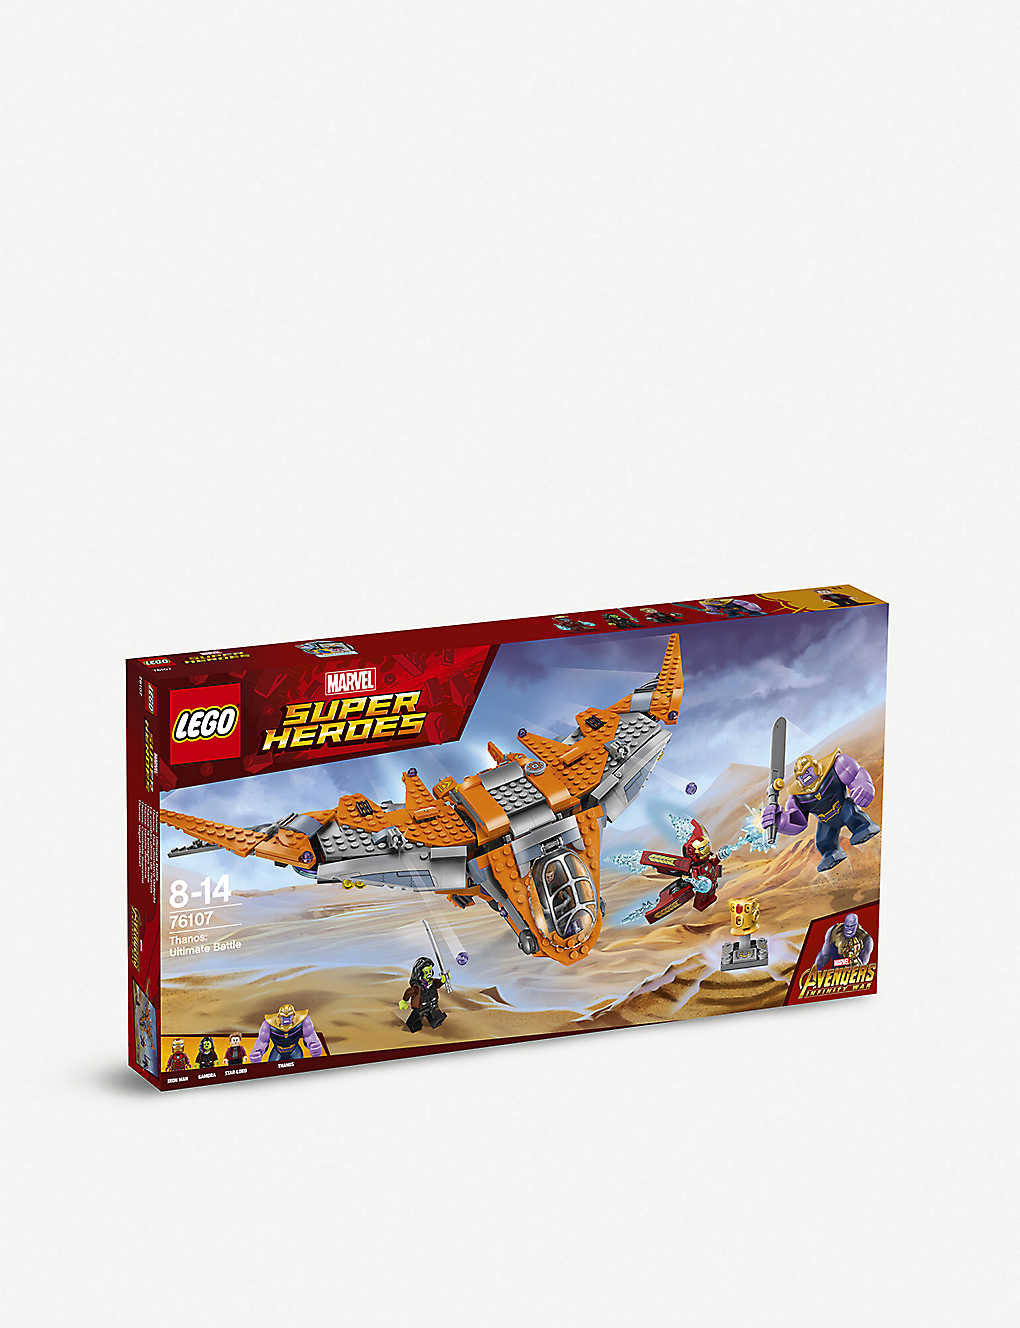 LEGO - 76107 Marvel Super Heroes: Avengers Thanos Ultimate